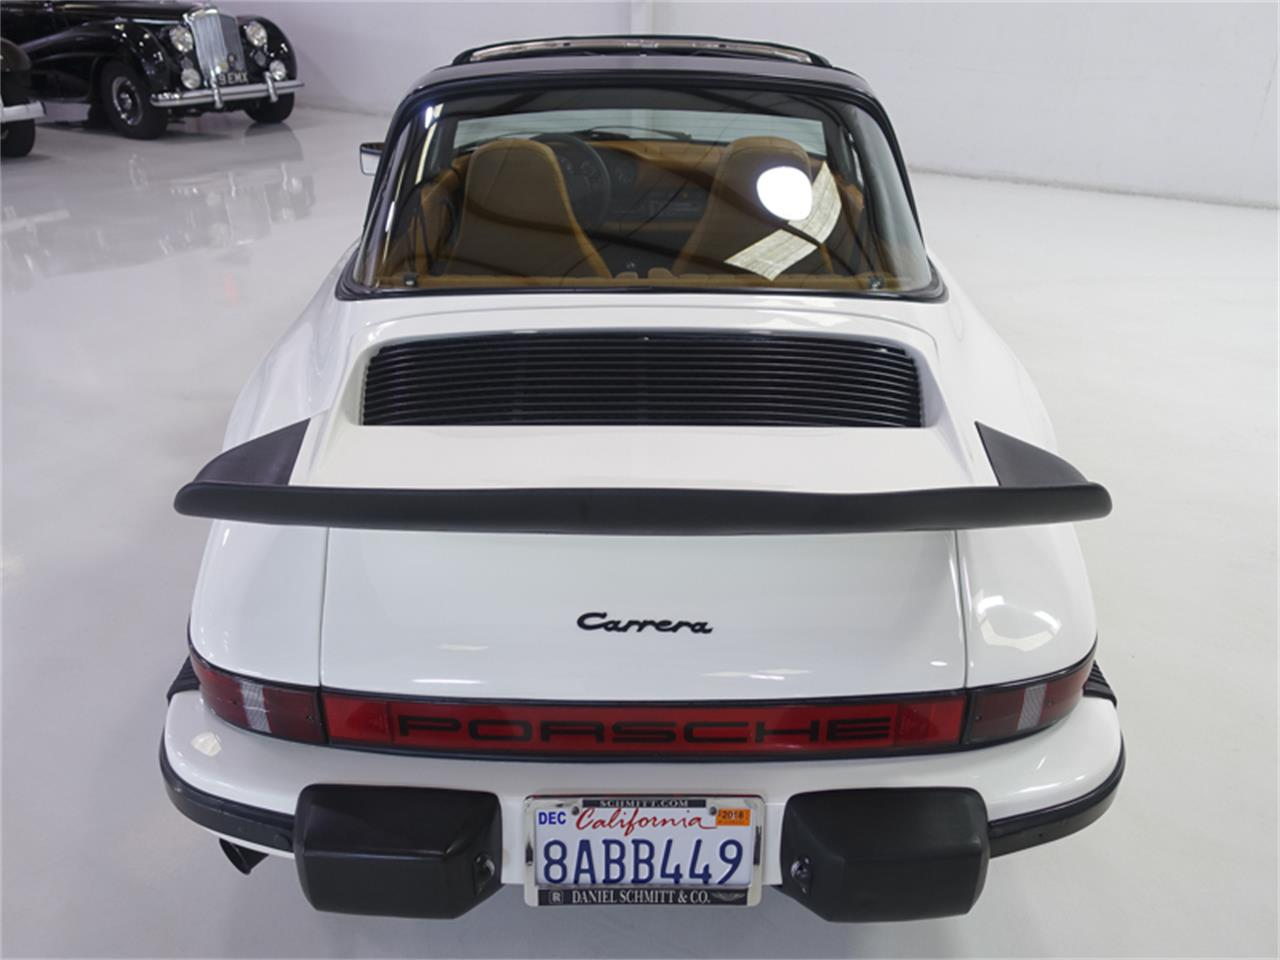 Large Picture of 1975 Porsche 911 Carrera located in Missouri Offered by Daniel Schmitt & Co. - PGEE